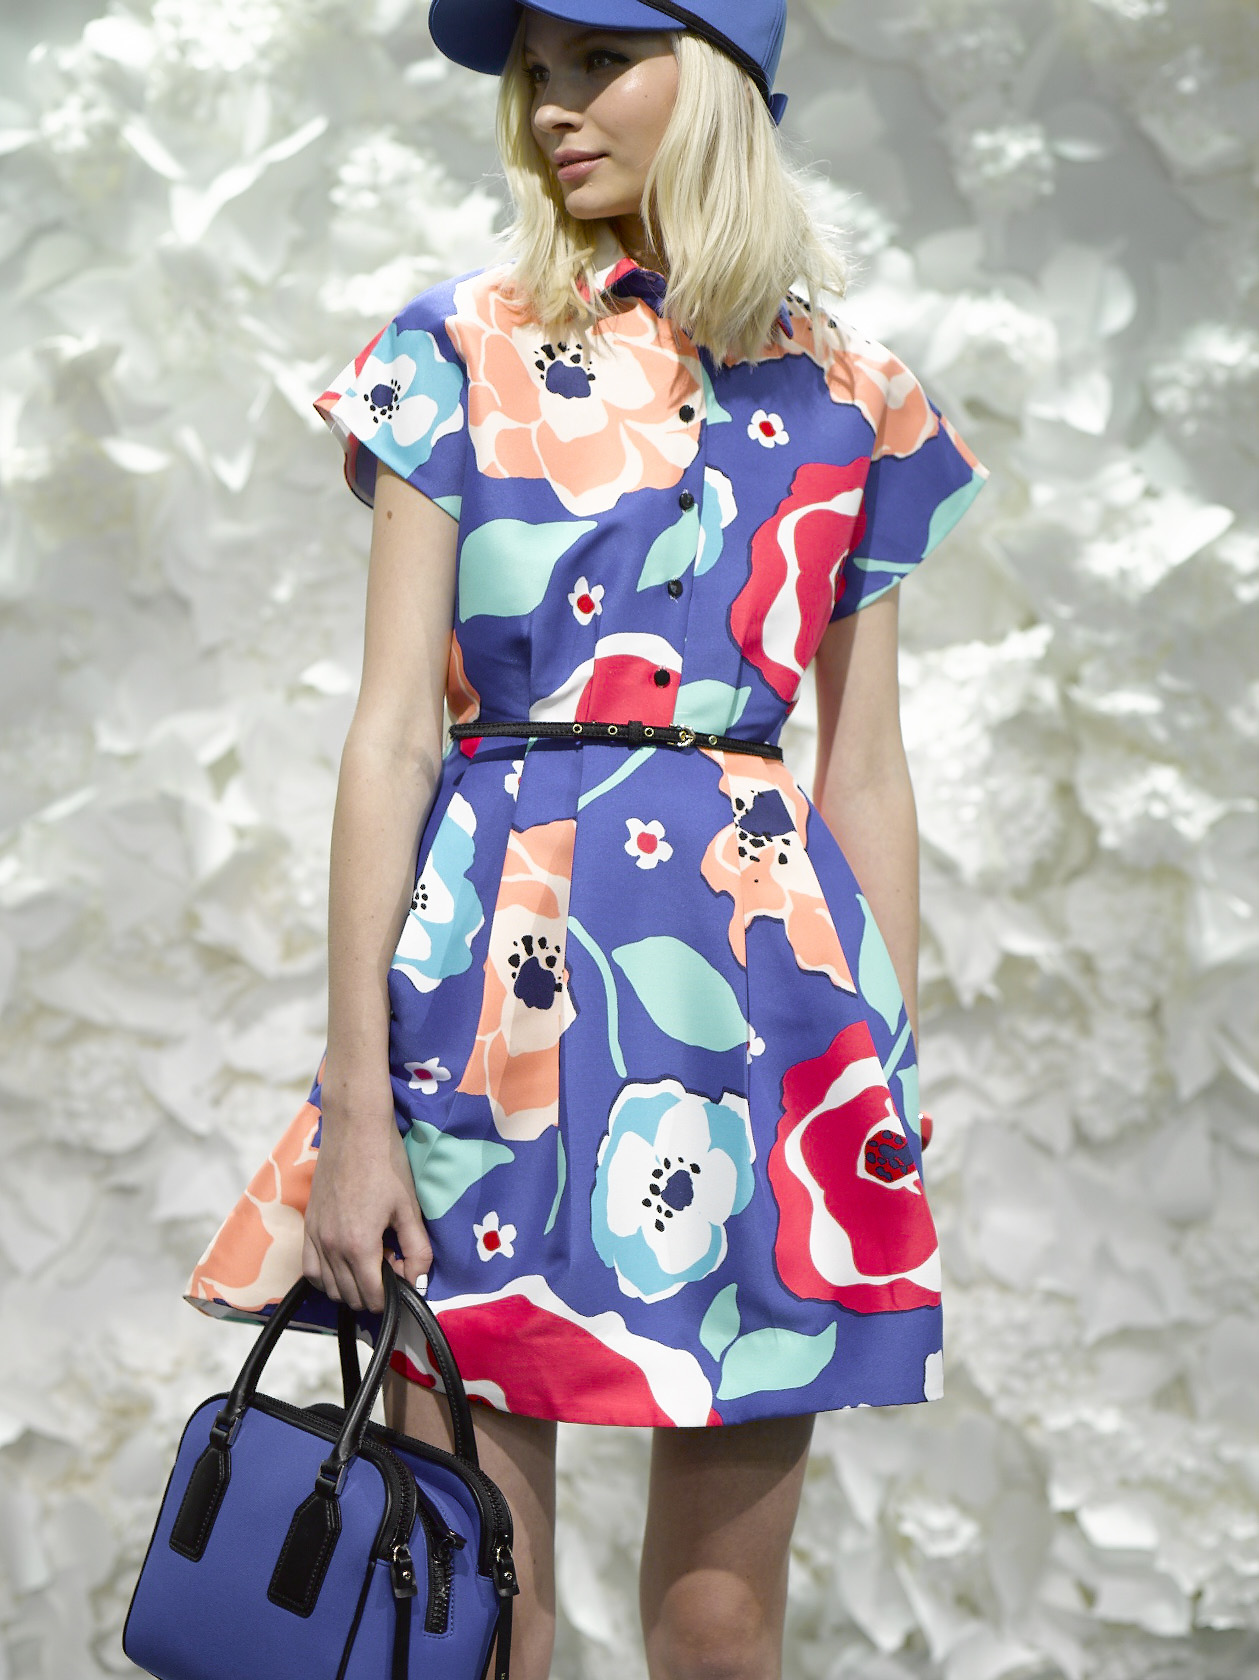 I just loved the Kate Spade, Spring/Summer 2015 collection at NYFW!